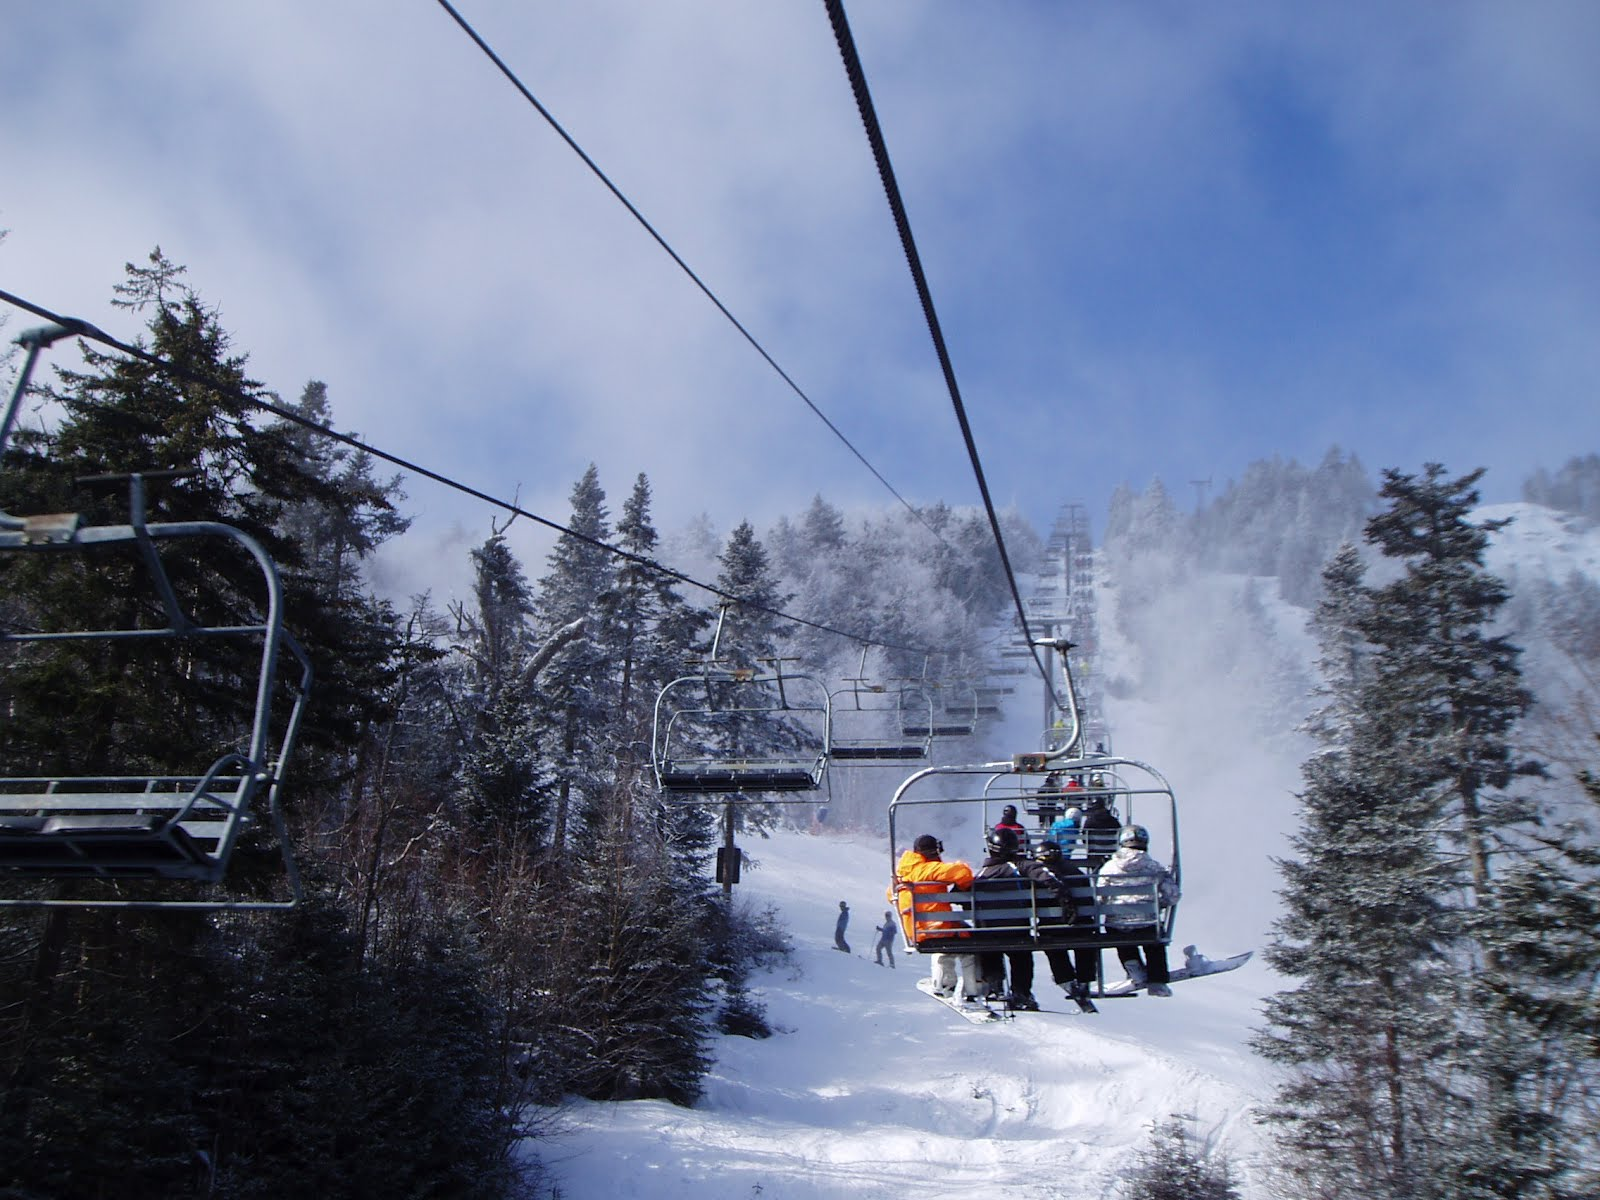 Gore's Straightbrook chairlift on February 4, 2012